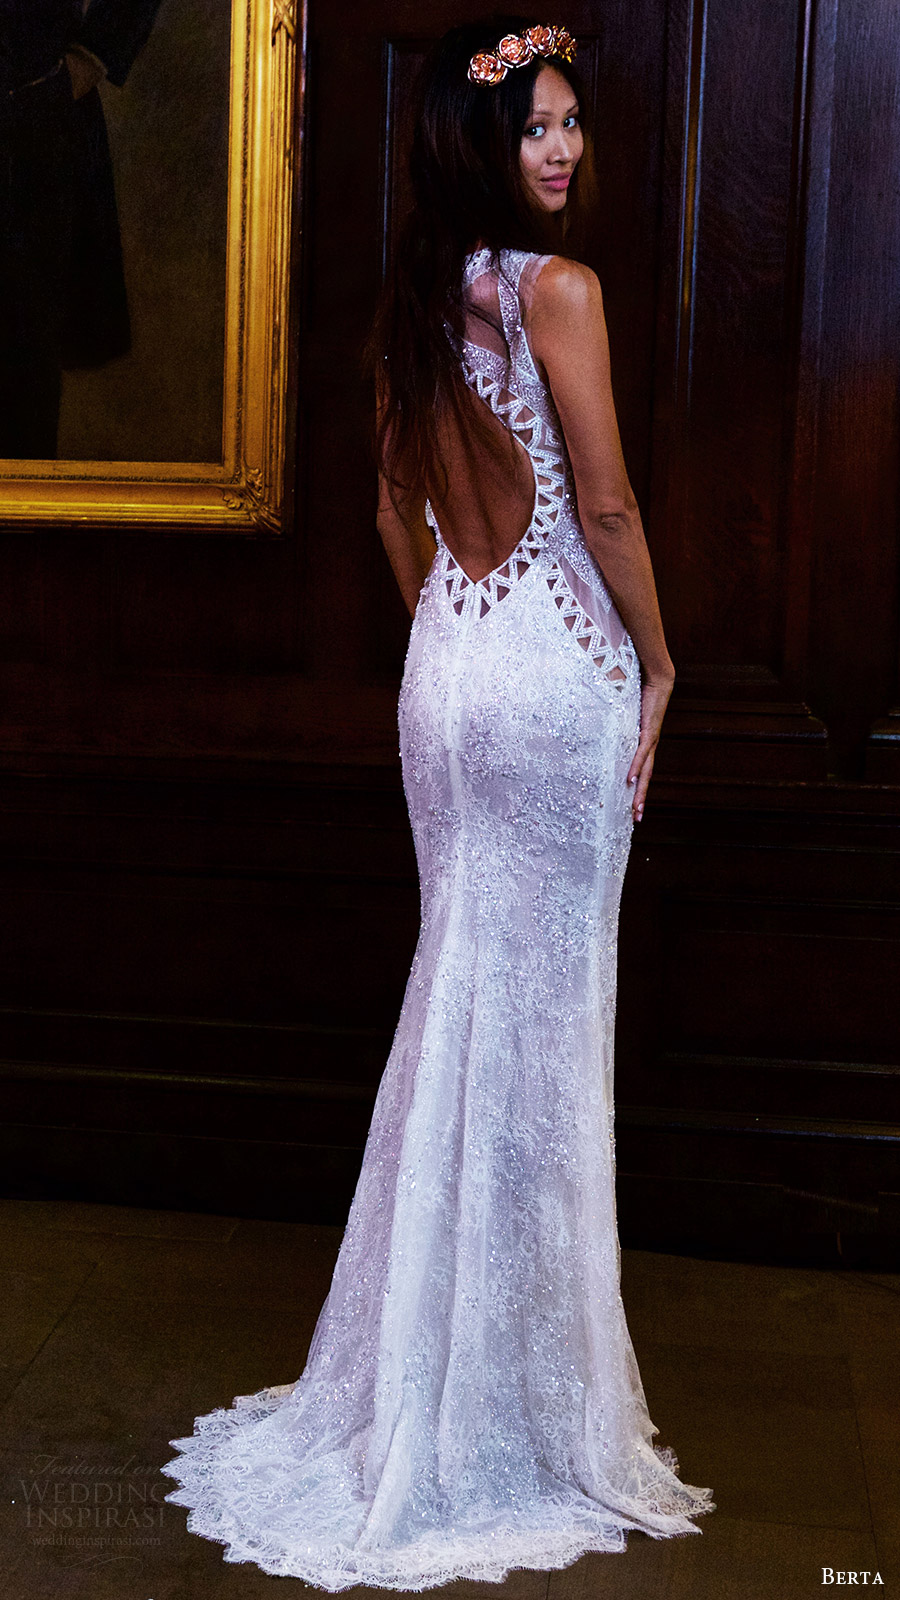 berta bridal fall 2016 sleeveless jewel neck beaded sheath wedding dress (16 117) bv keyhole train